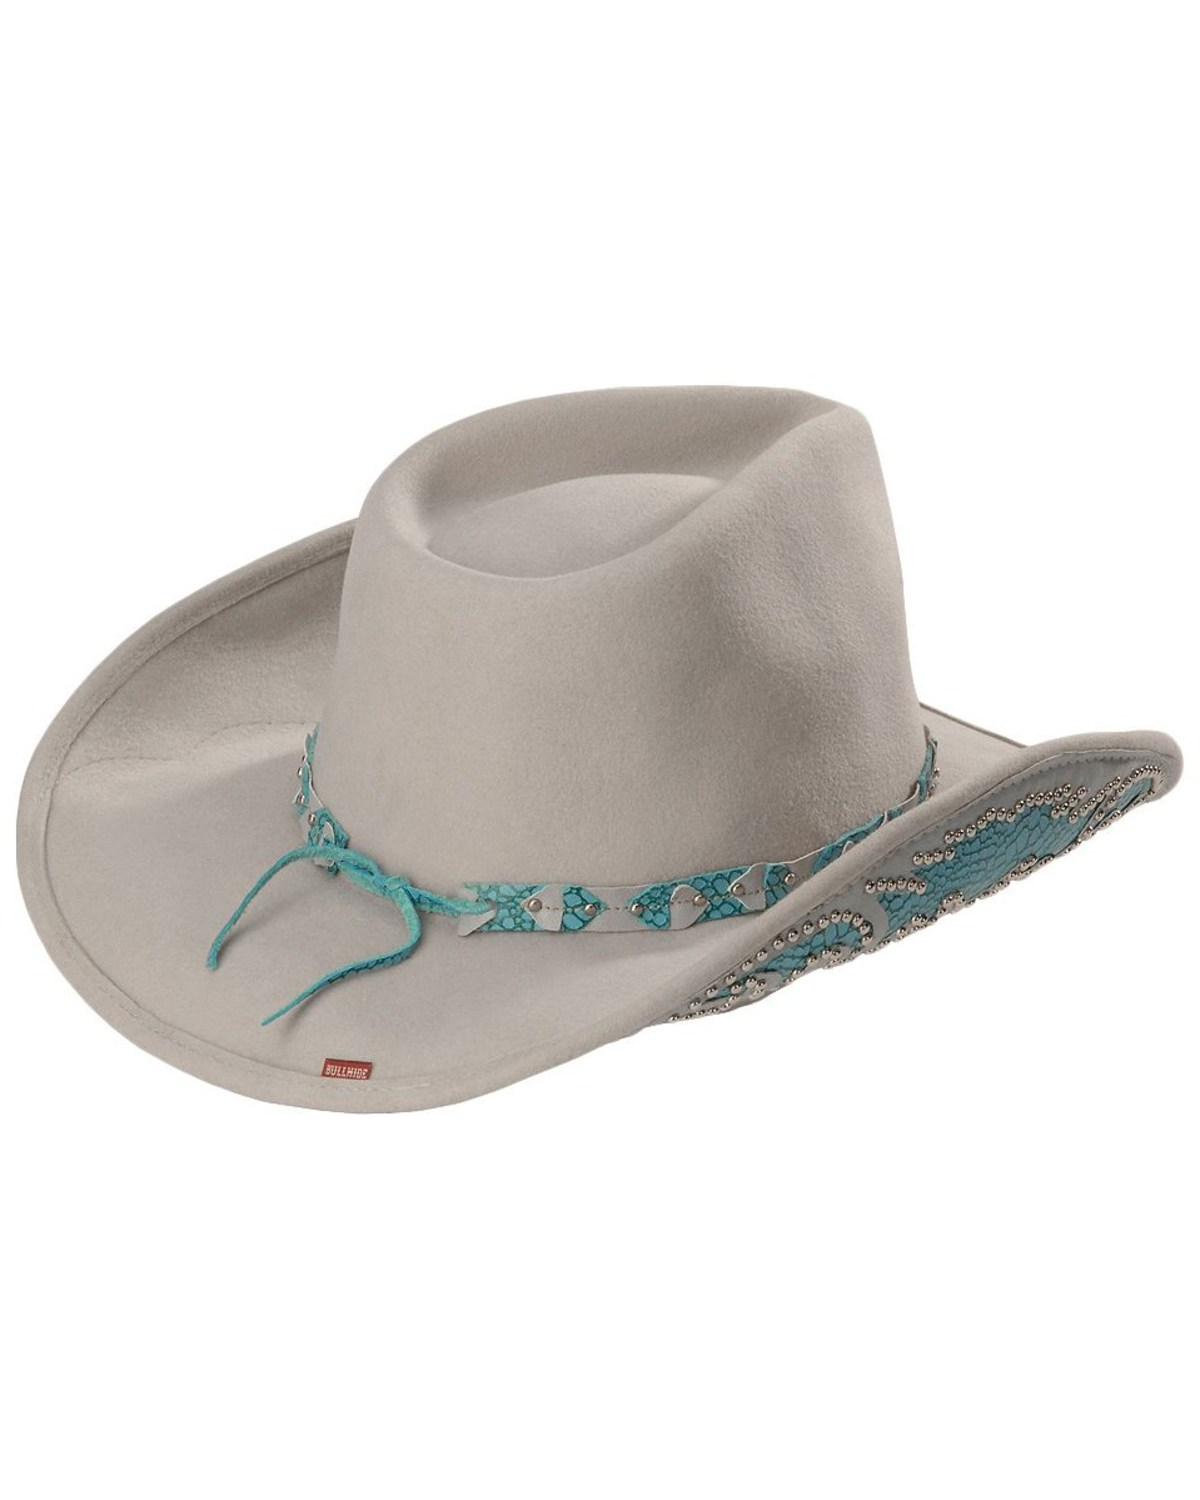 Bullhide Grey Natural Beauty Wool Cowgirl Hat  ac48dc89e7c